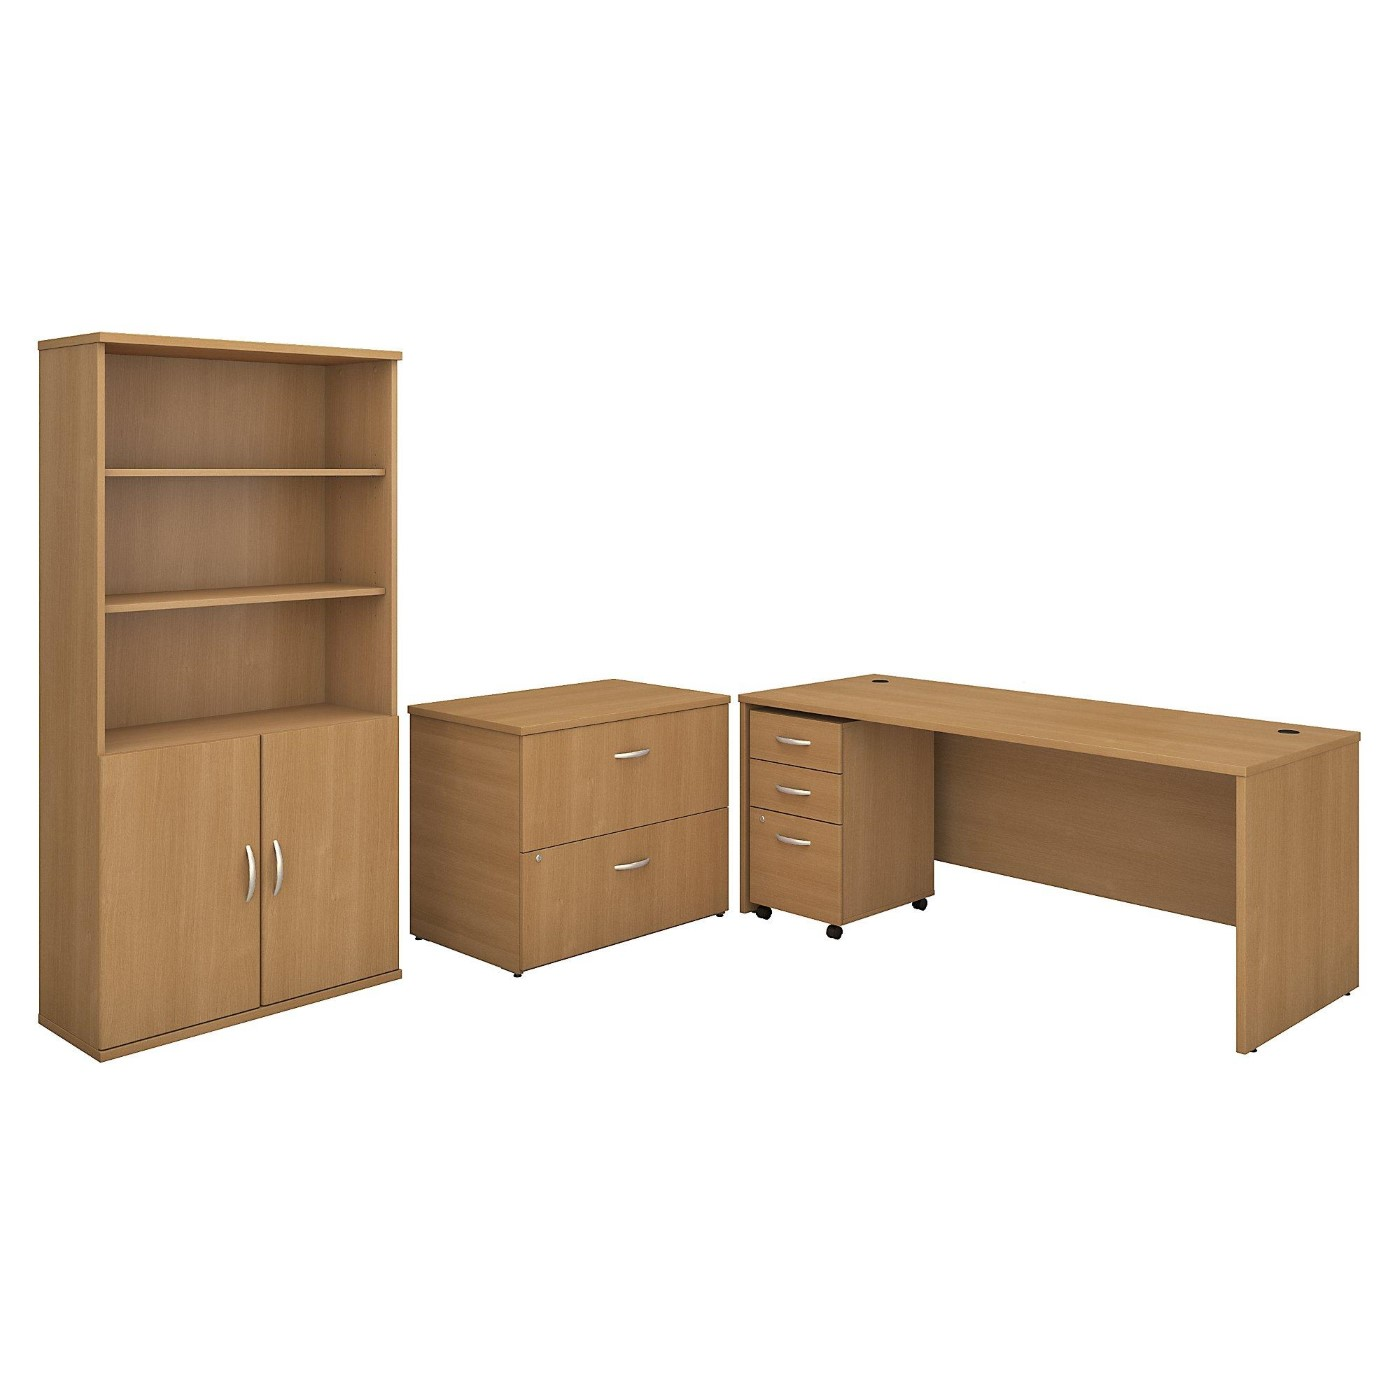 <font color=#c60><b>BUSH BUSINESS FURNITURE SERIES C 72W OFFICE DESK WITH BOOKCASE AND FILE CABINETS. FREE SHIPPING</font></b></font>